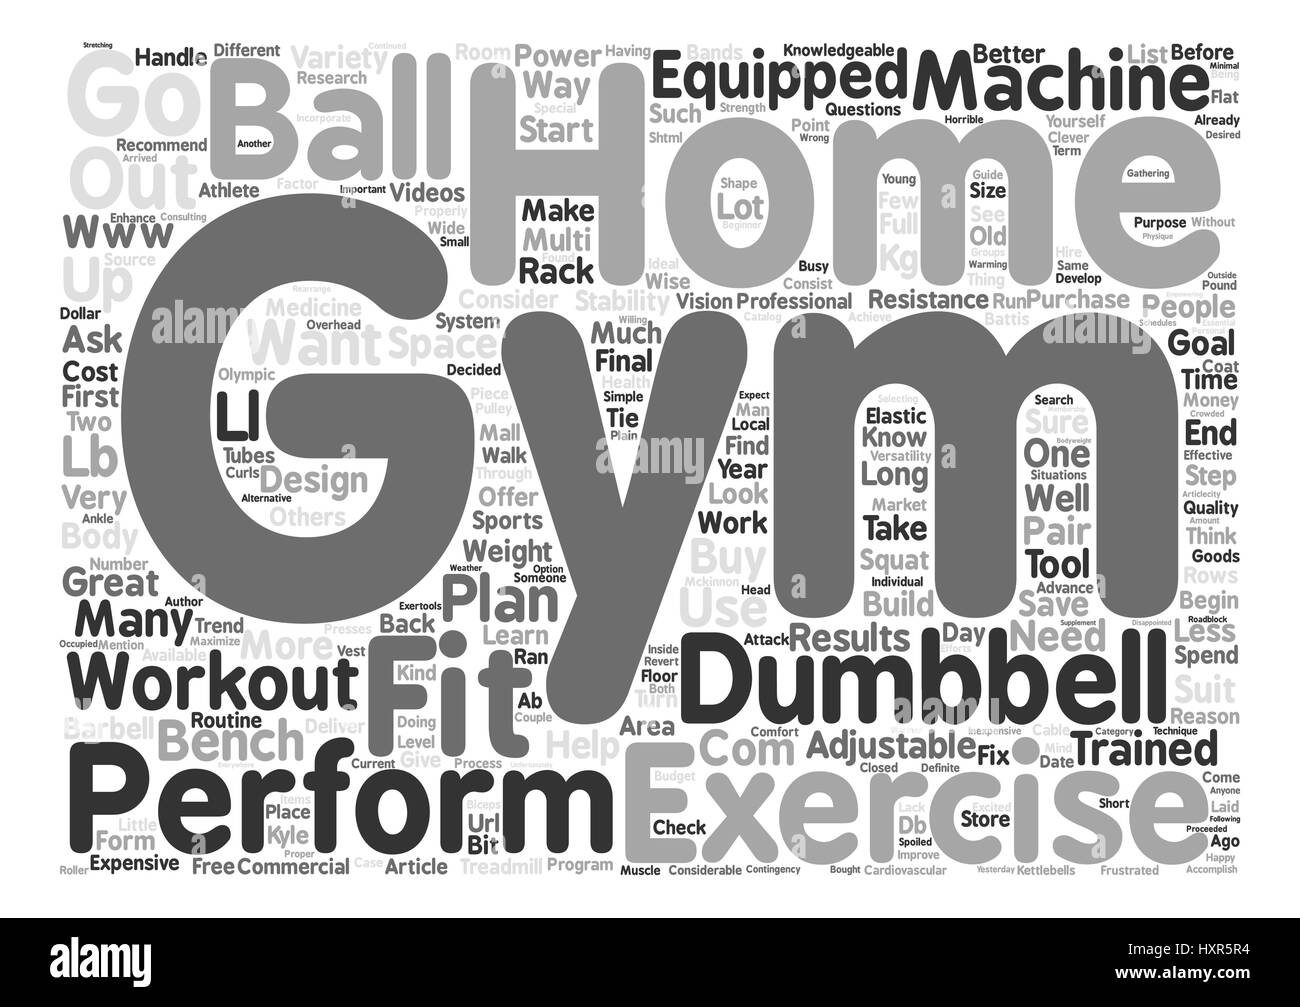 So You Want To Build A Home Gym You Want To Build A Home Gym Text  Background Word Cloud Concept